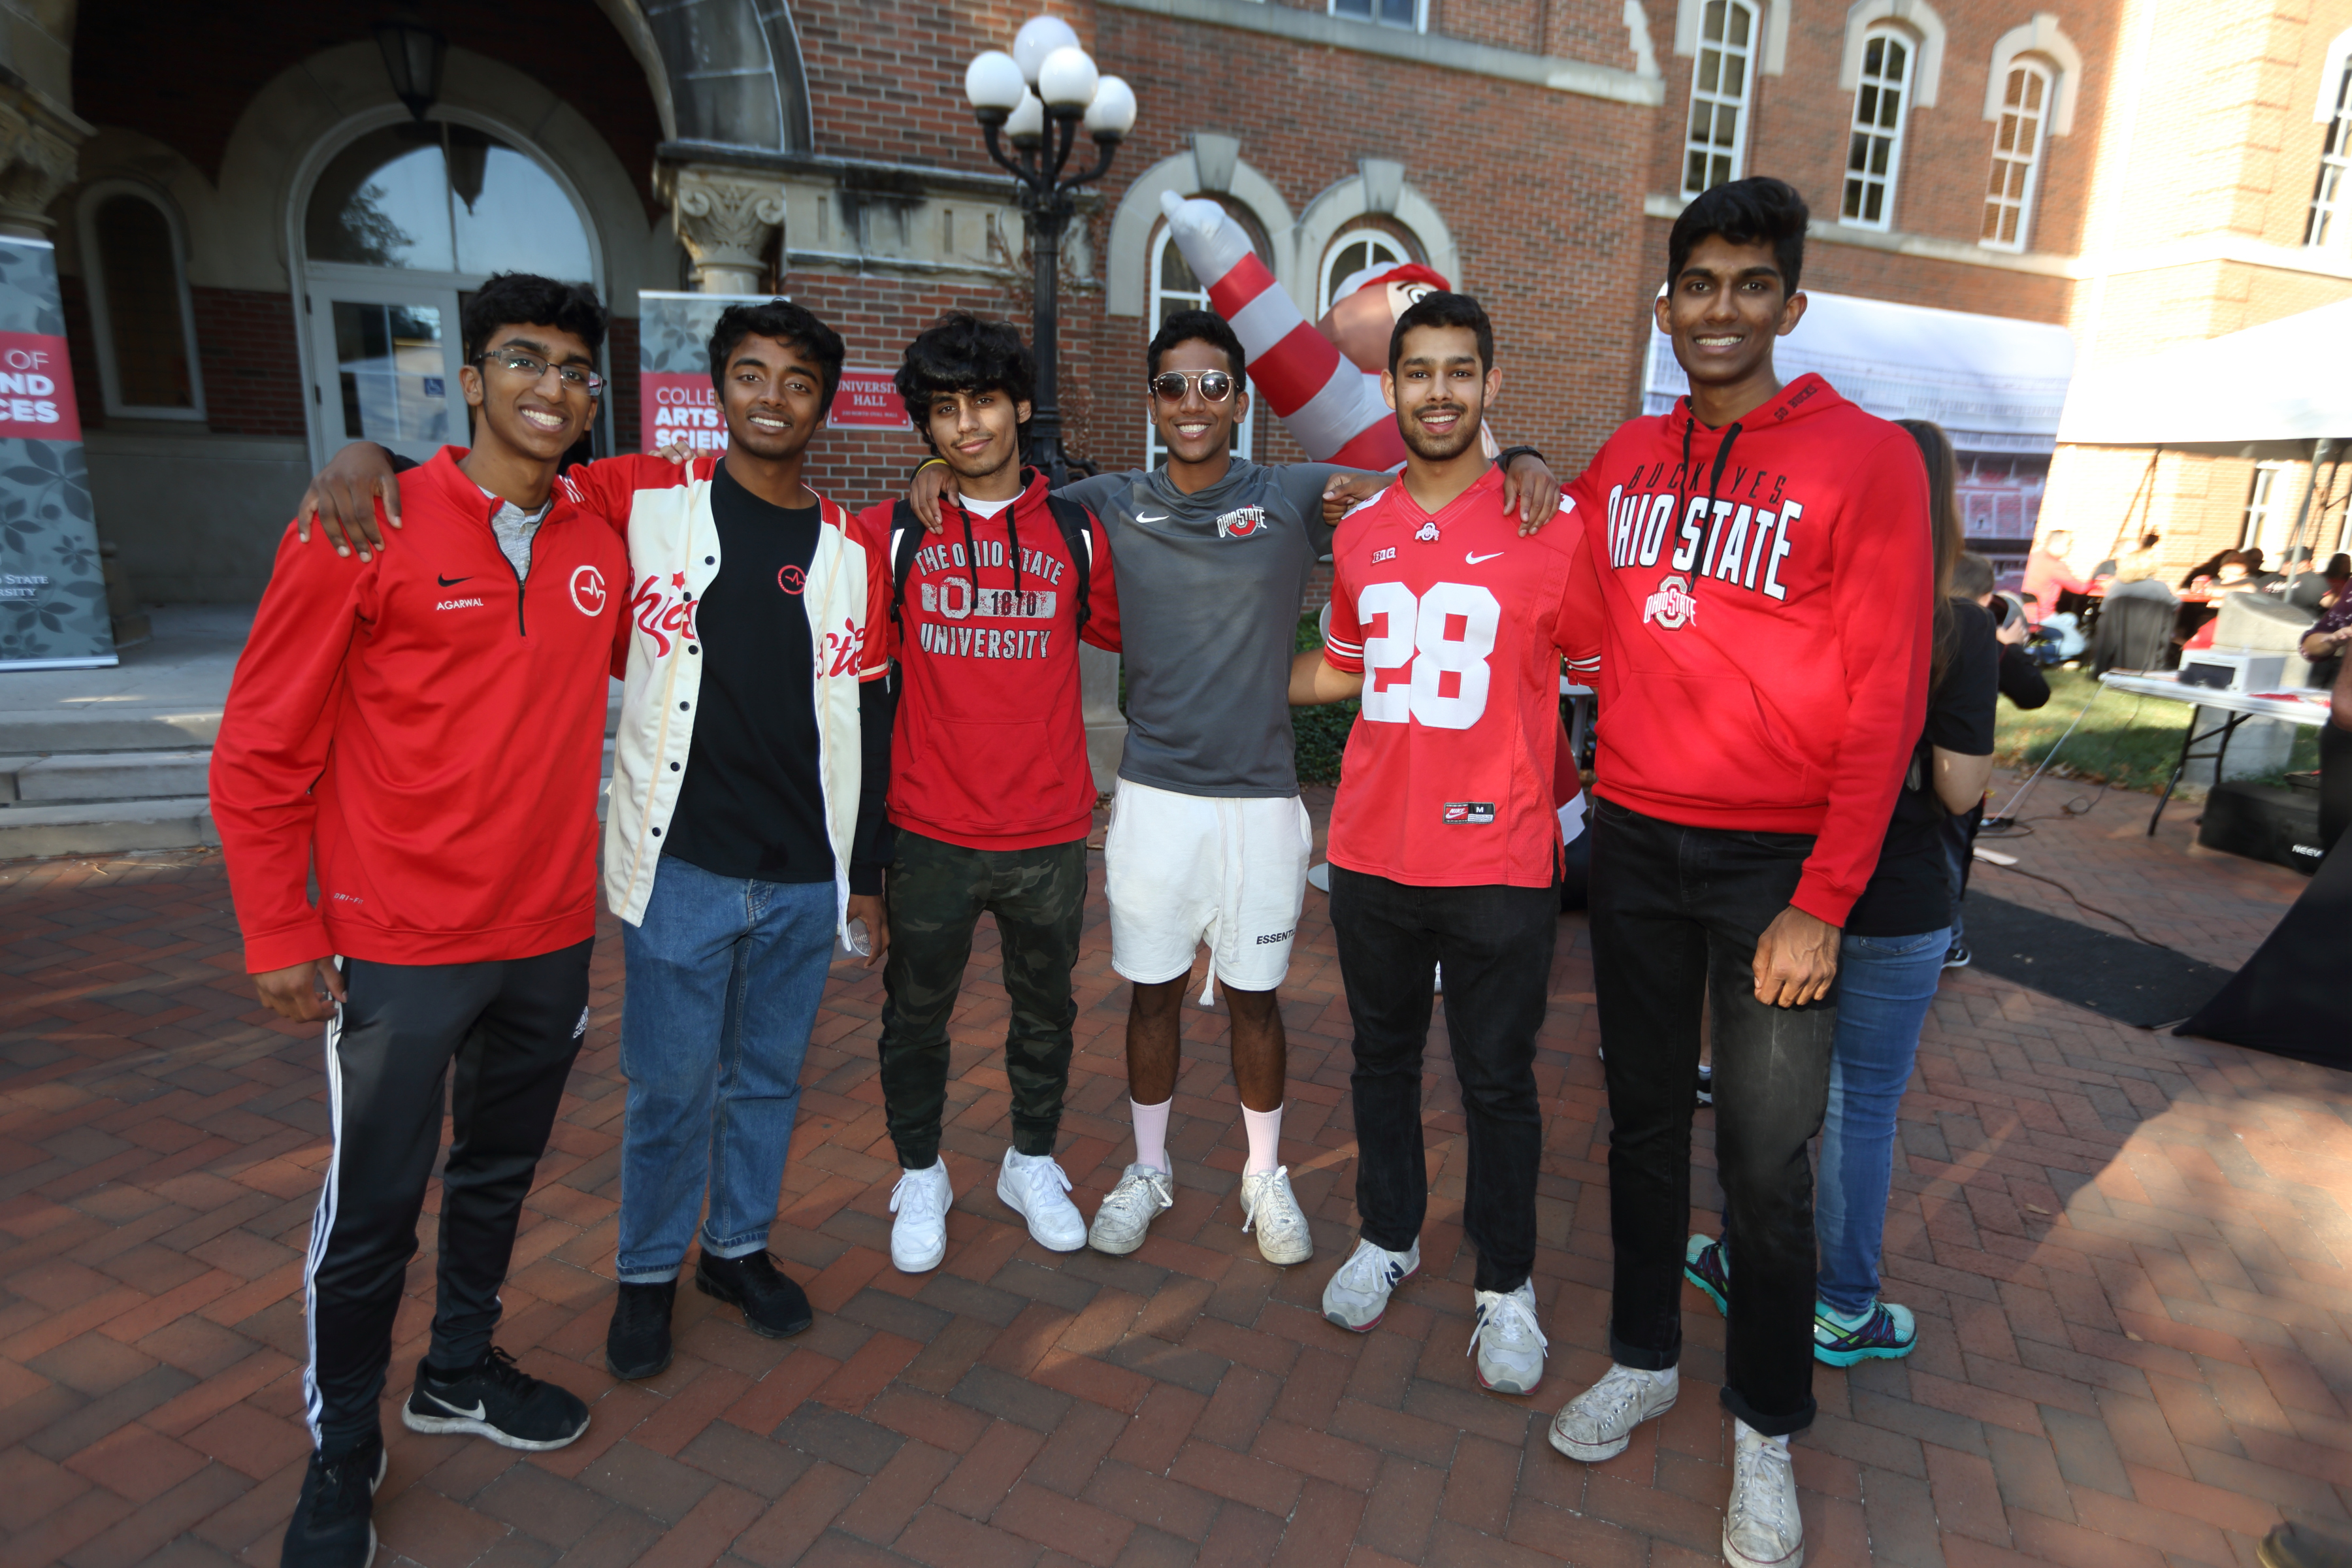 Arts and Sciences Homecoming Tailgate, October 5, 2019